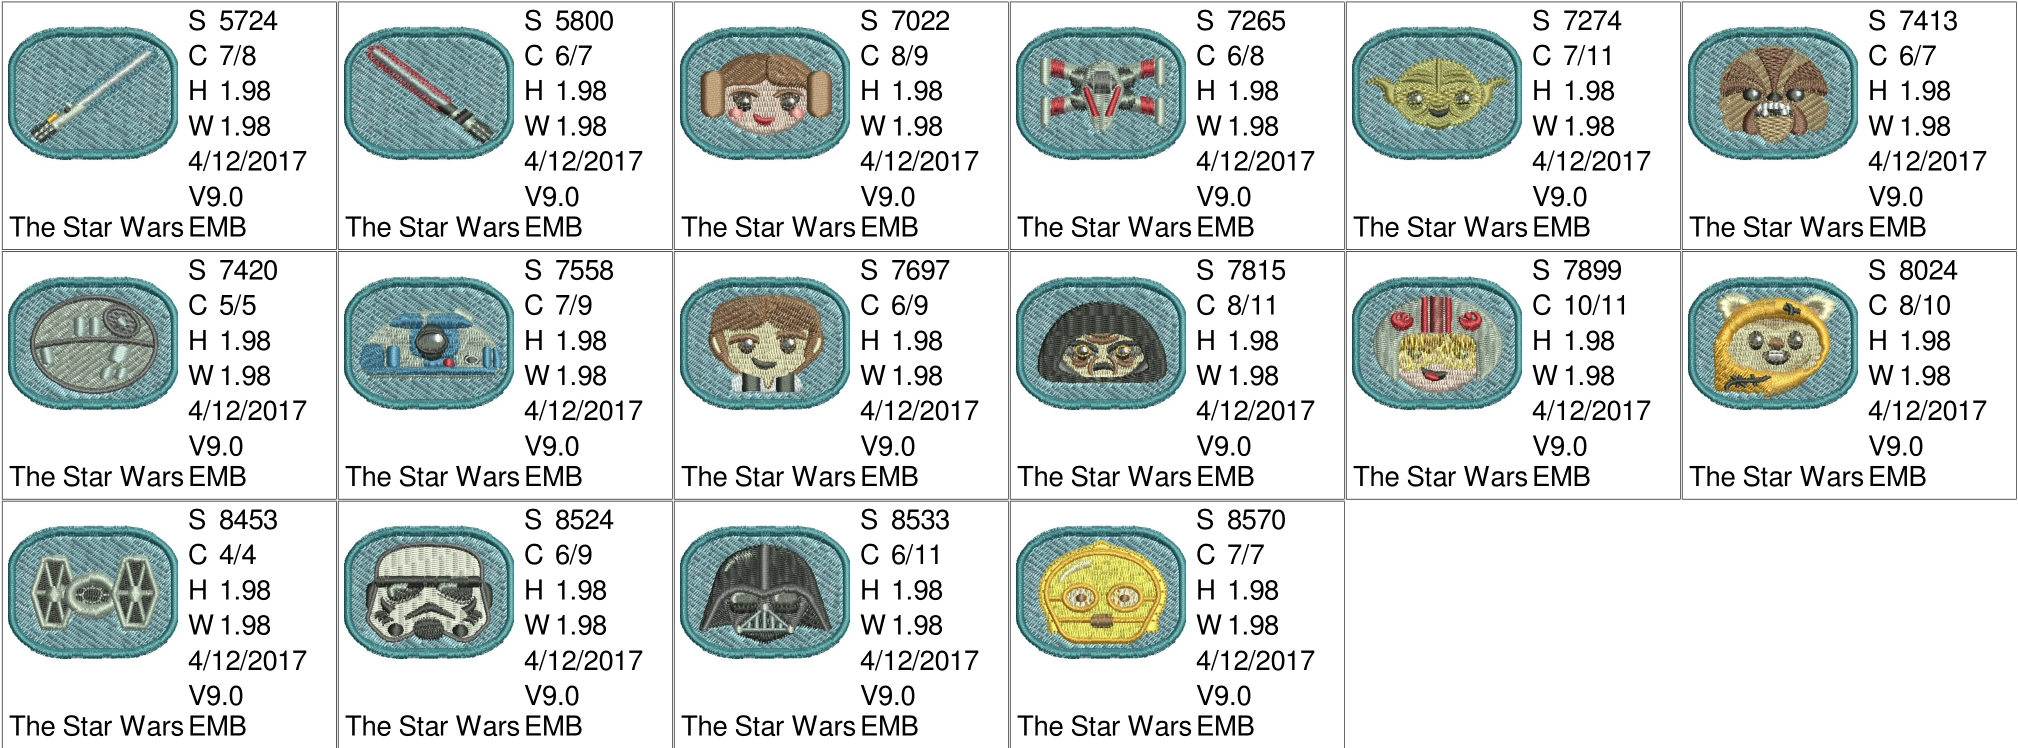 Star Wars Embroidery Pattern Star Wars Emojis Machine Embroidery Designs 16 Resizable Designs For Badges Key Fobs Tshirts Hats Towels Bibs